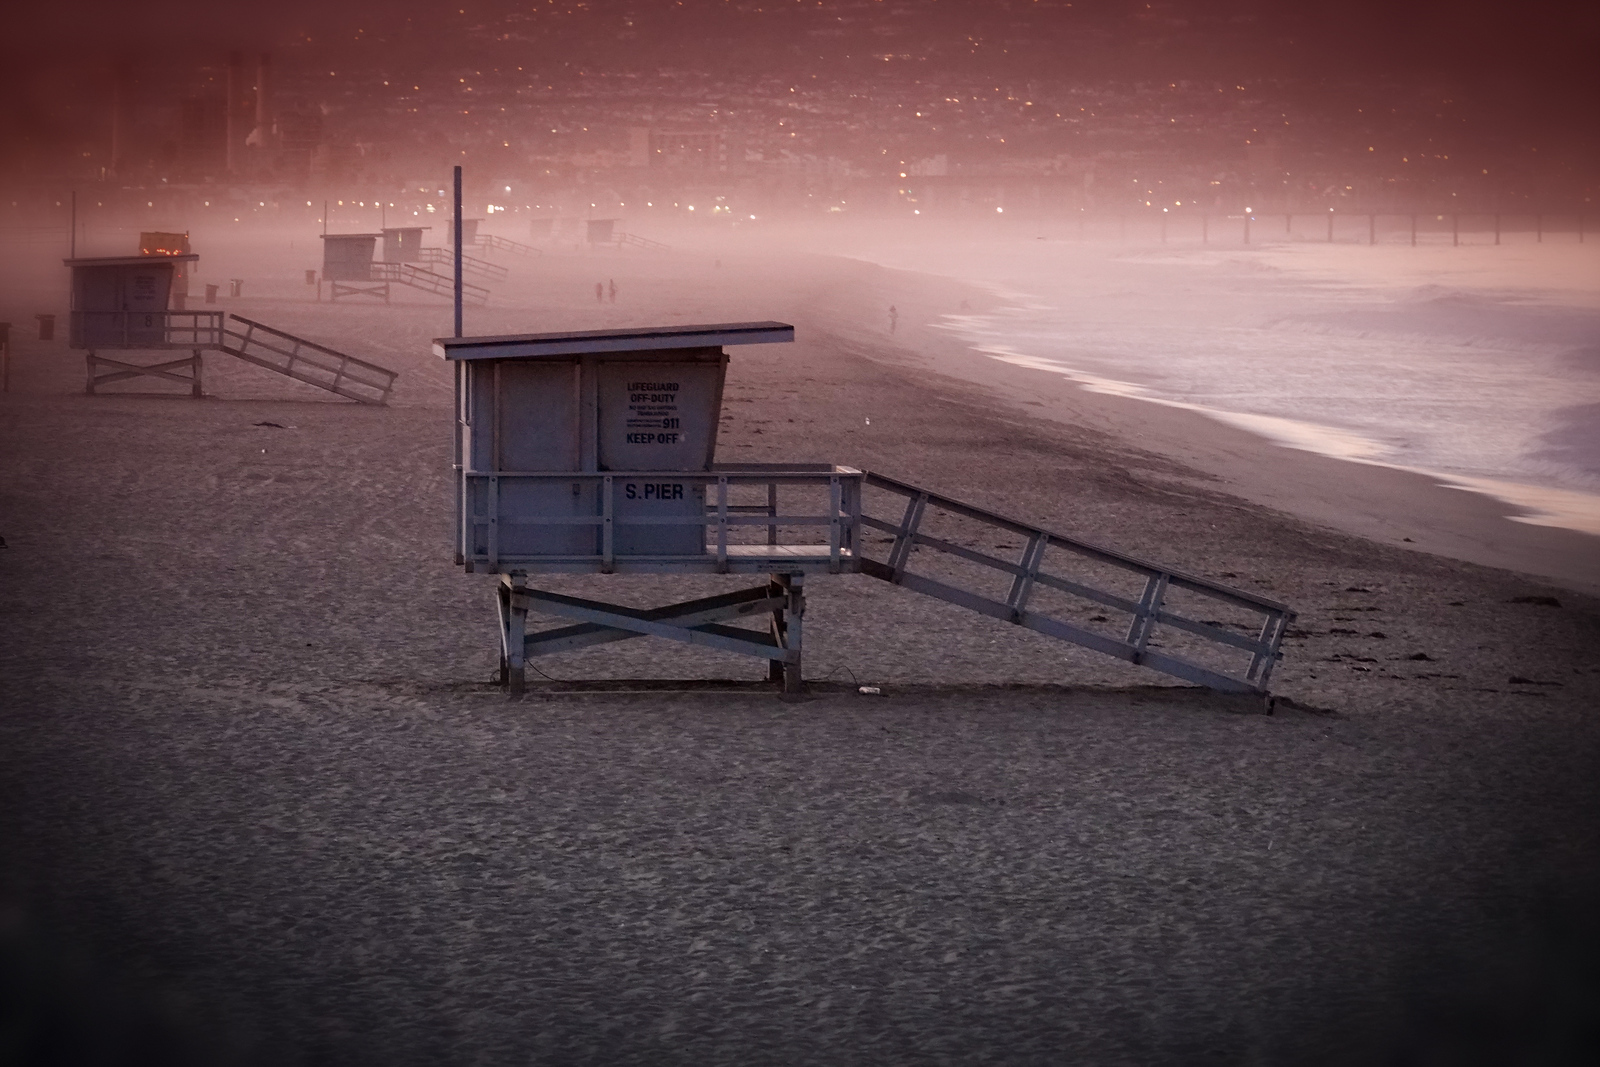 A lifeguard stand, with Redondo and Hermosa in background